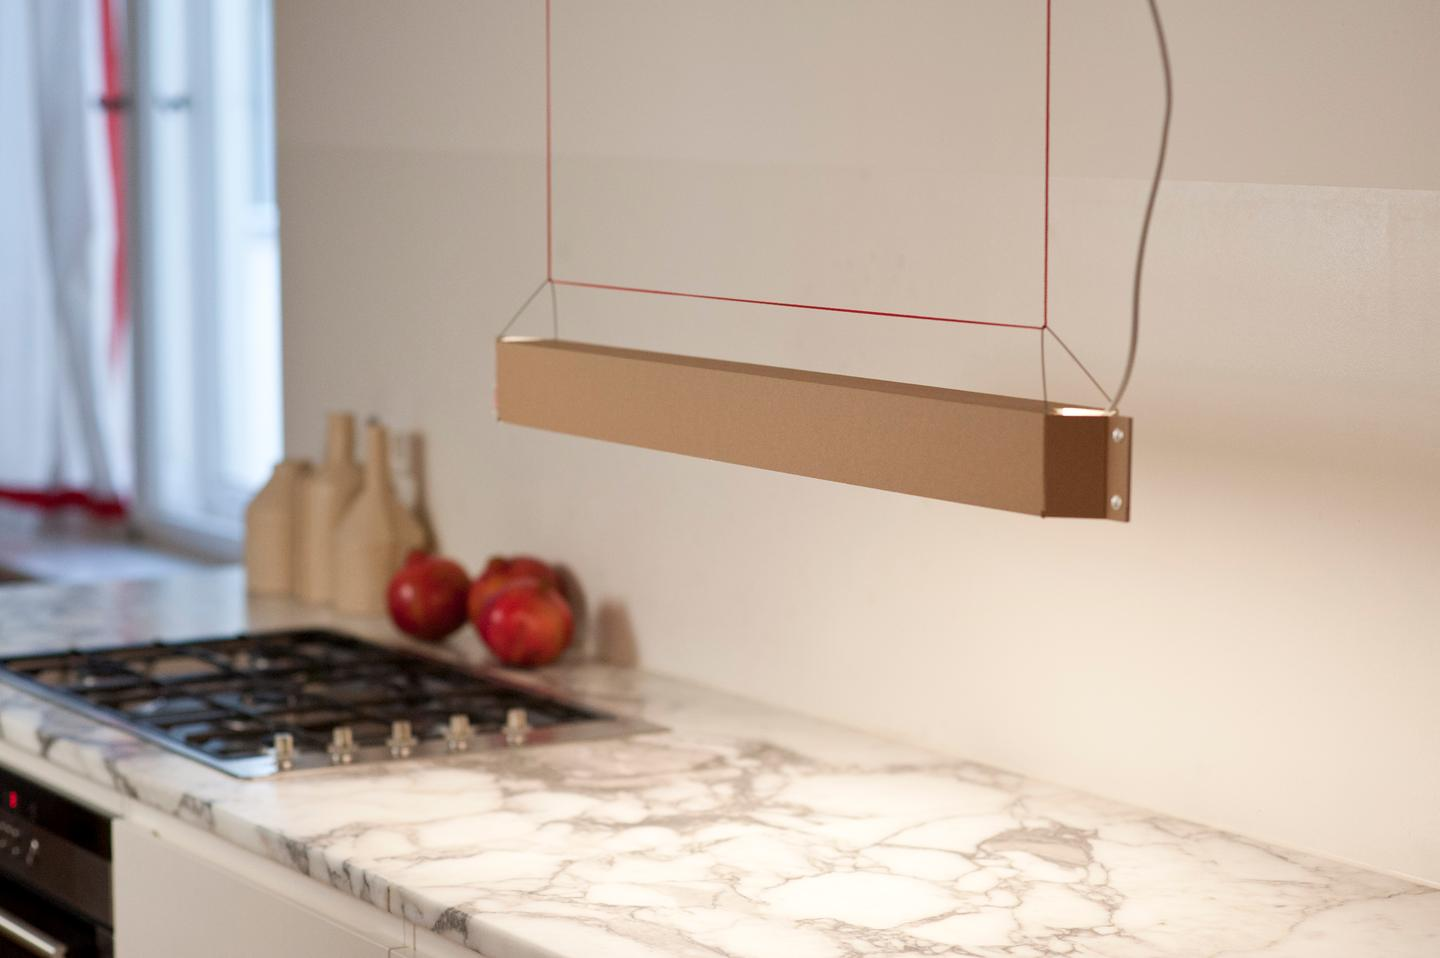 The lamp hangs from the ceiling and can be suitable for the kitchen, dining room, home workspace or office